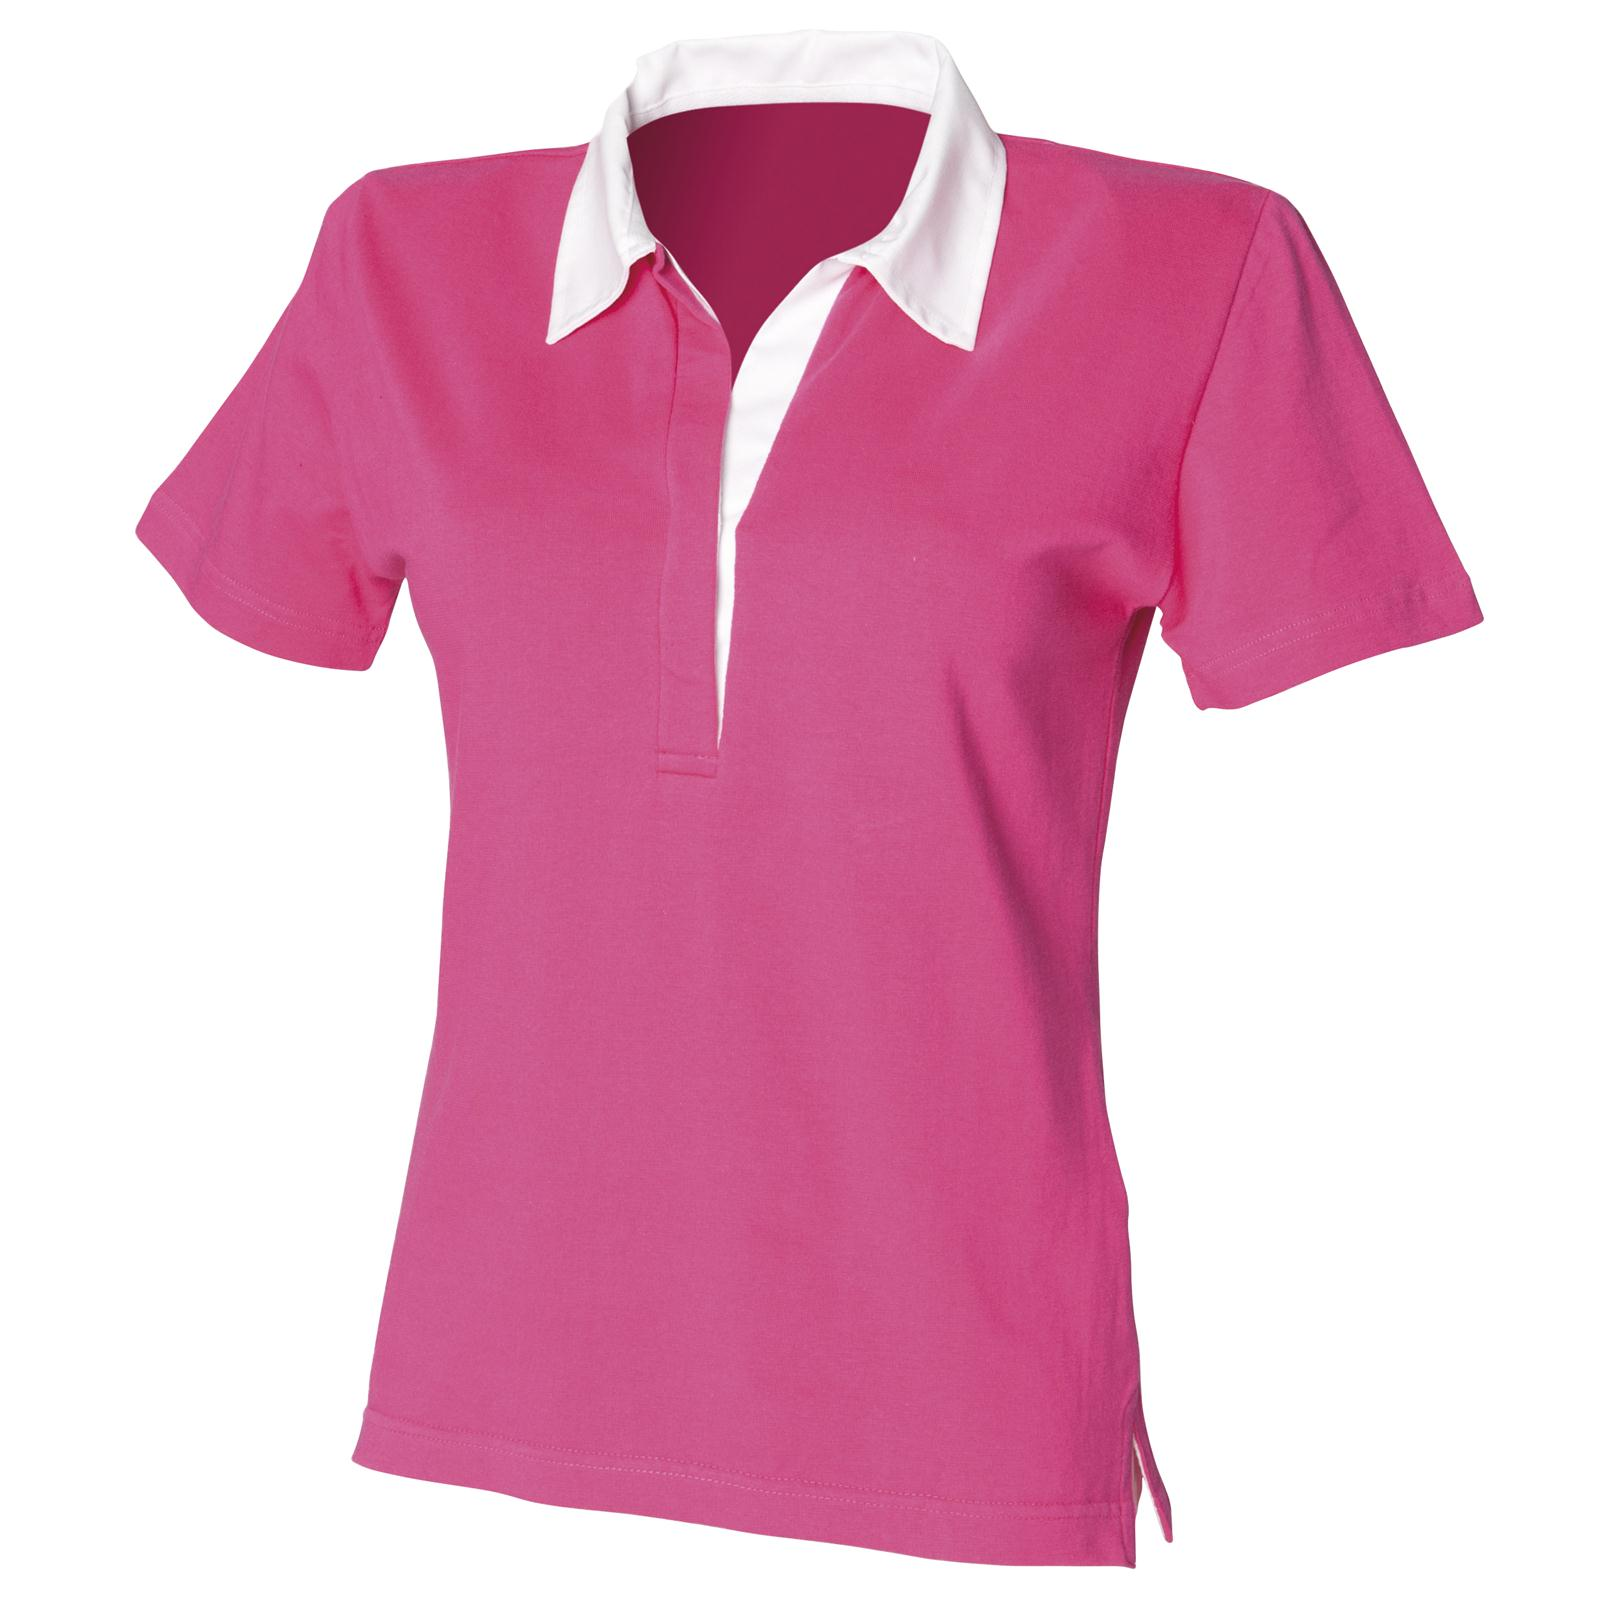 New Front Row Womens Ladies Short Sleeve Fitted Rugby